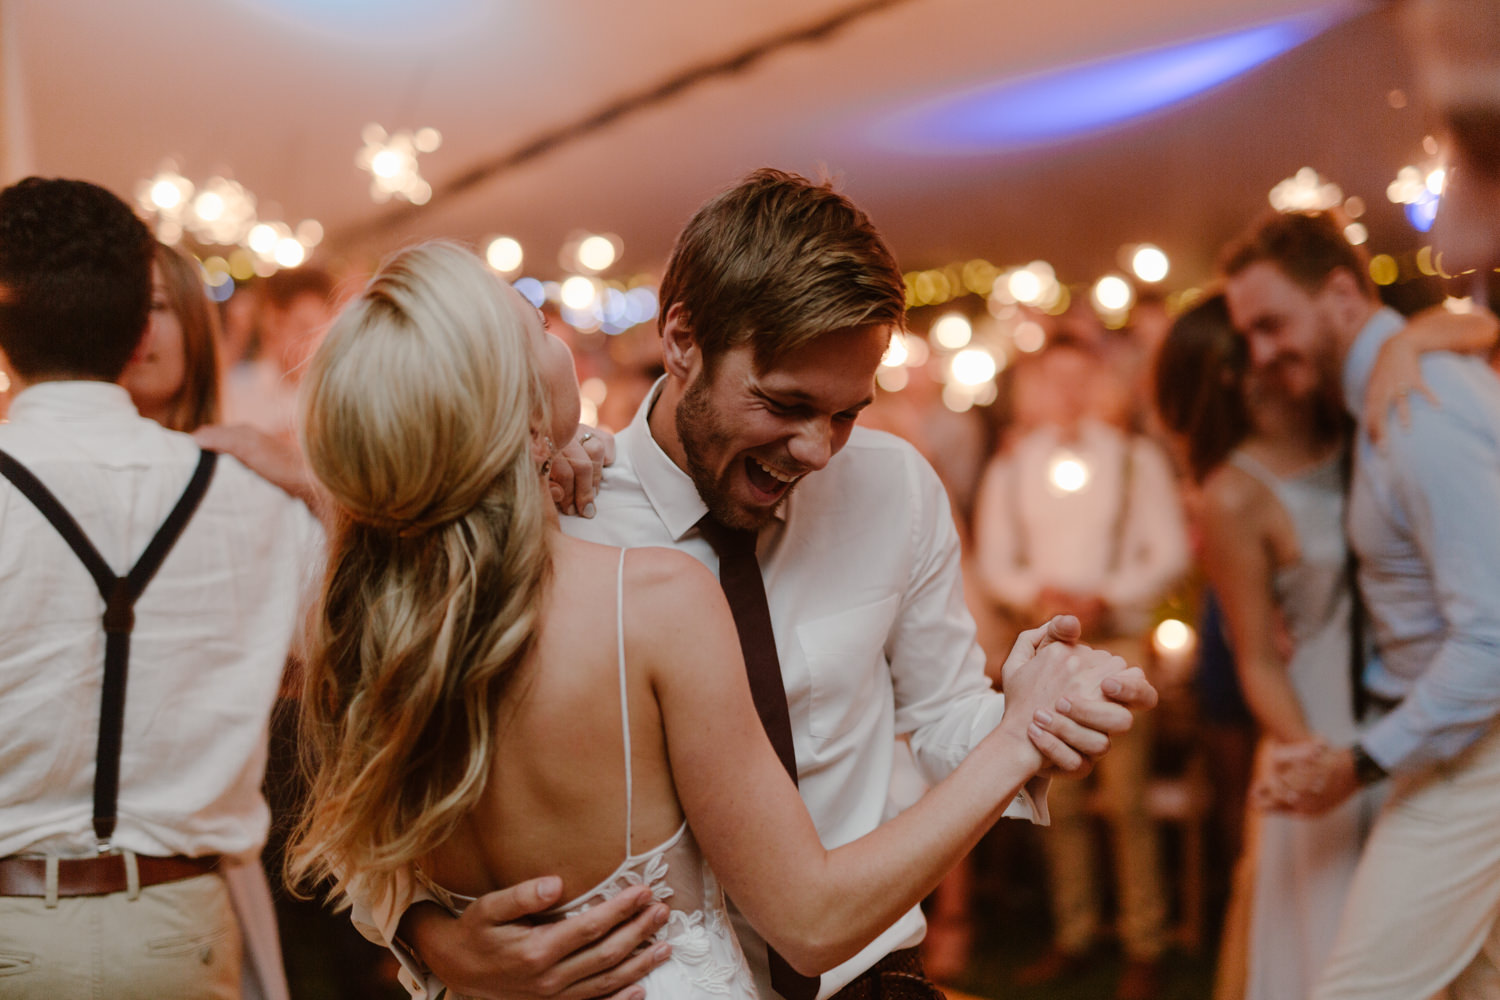 A young bride and groom dancing hand in hand at their wedding.